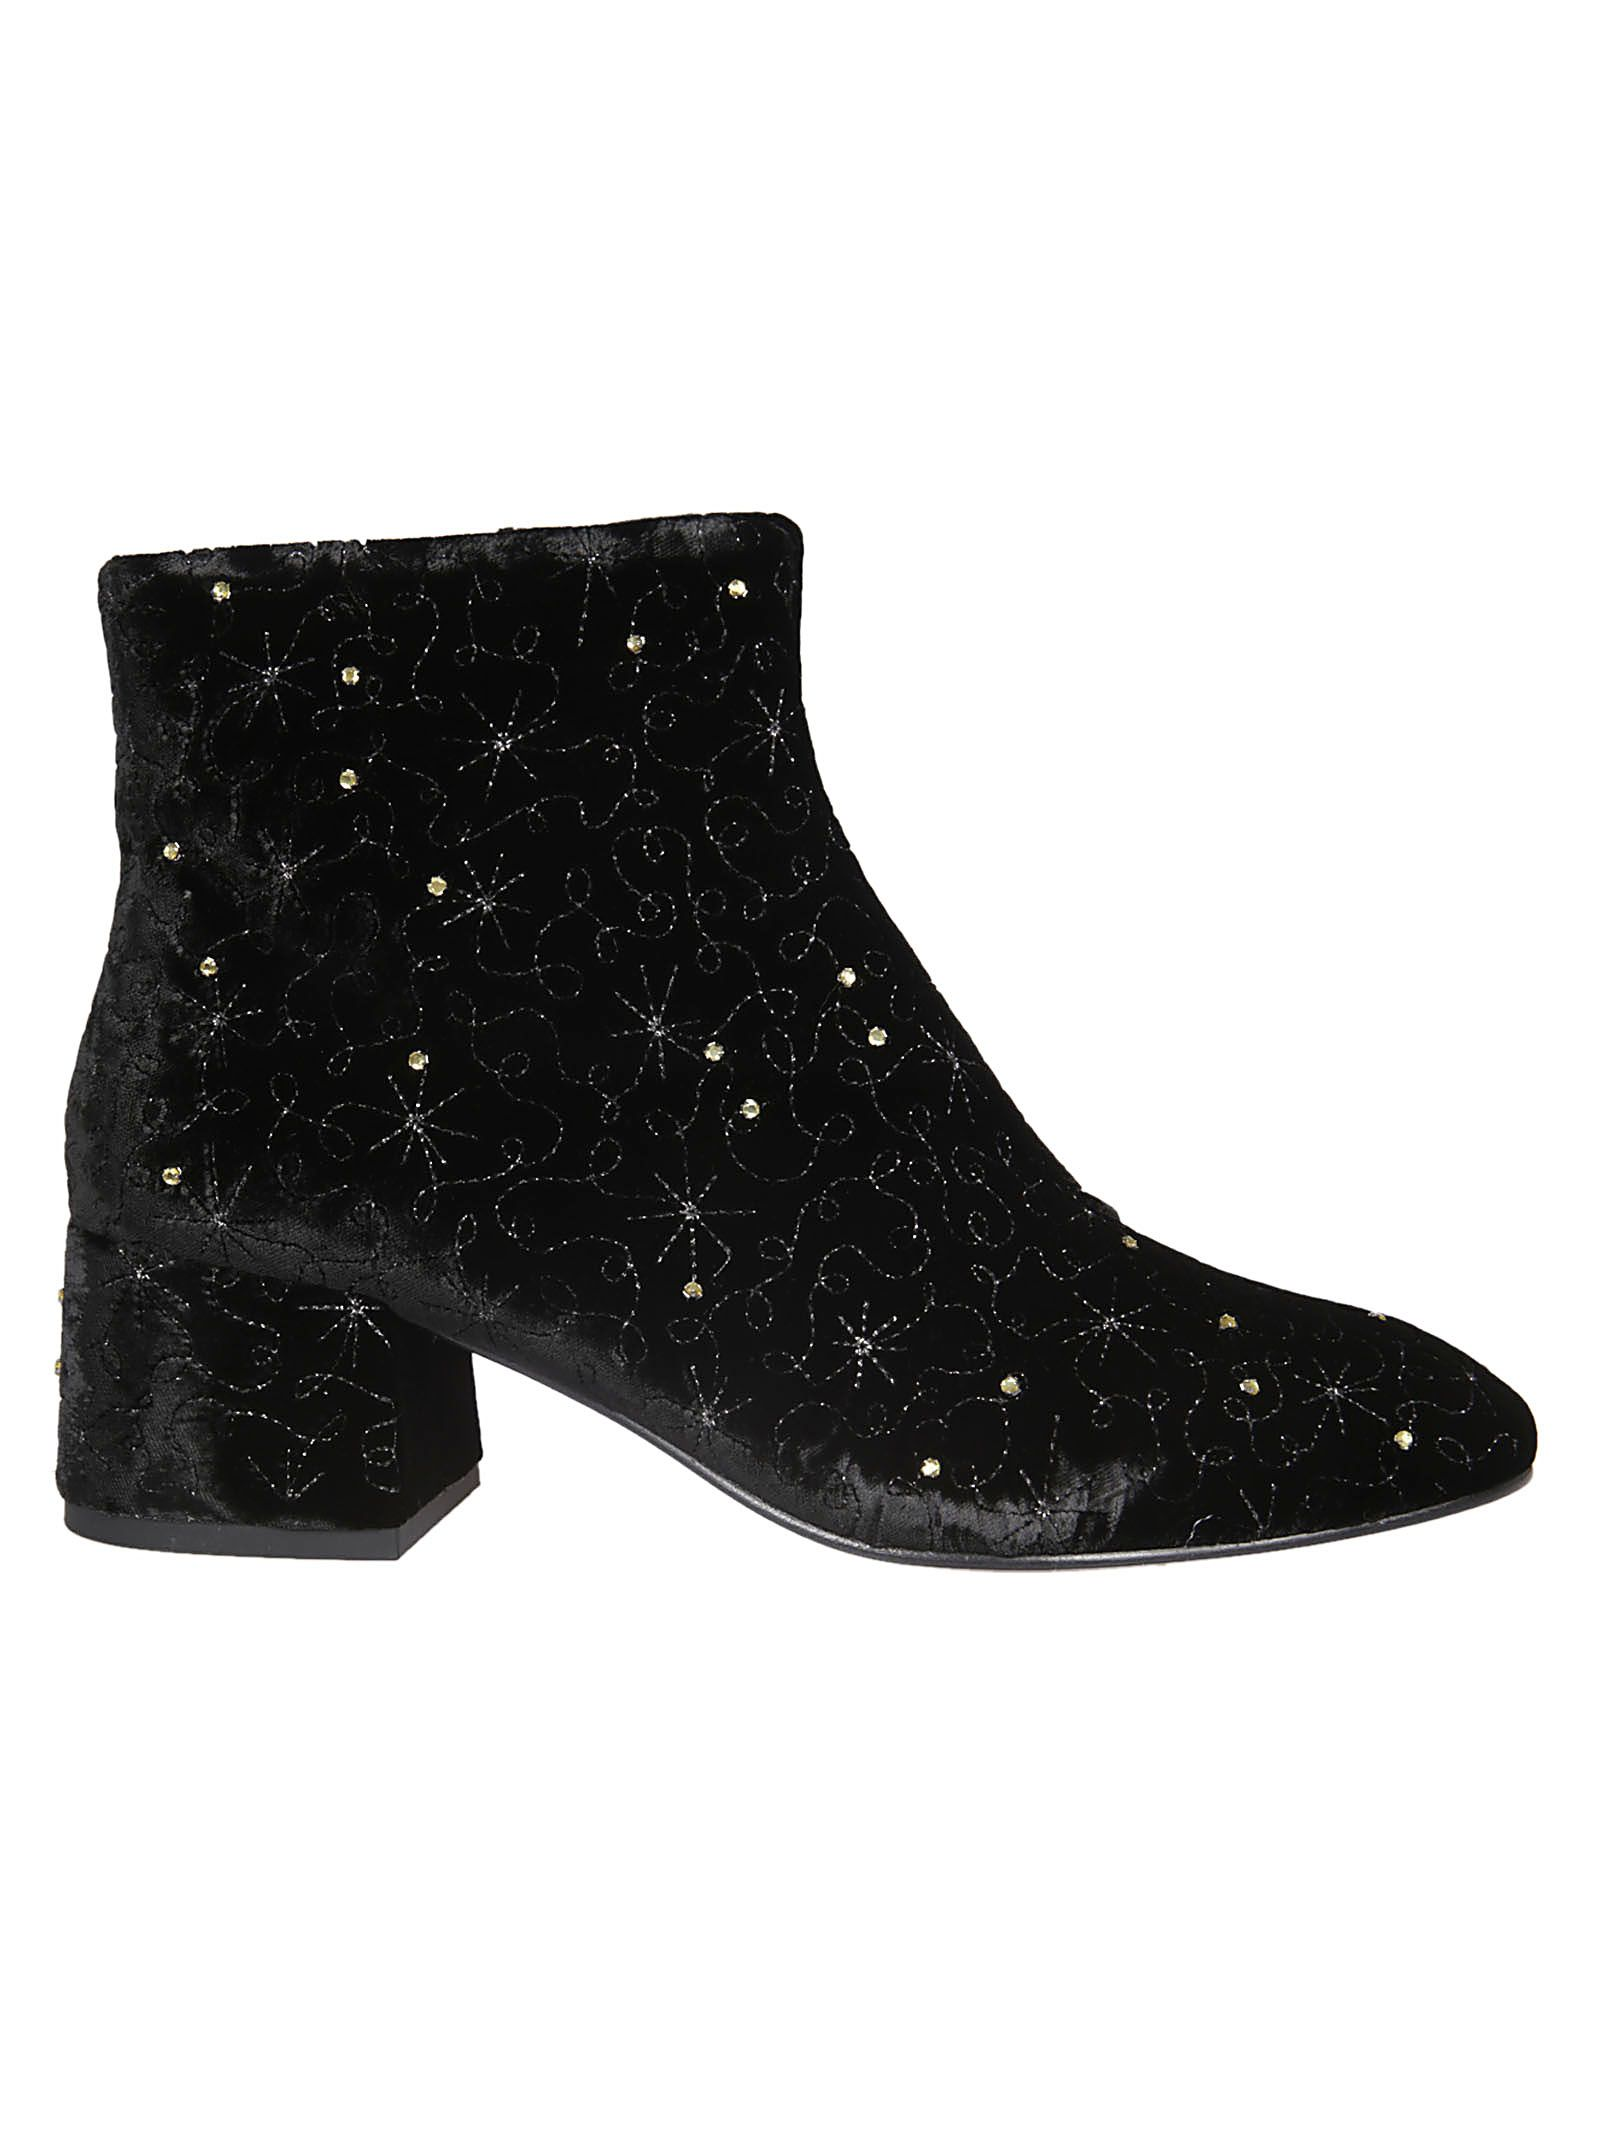 Ash Diamond Bis Embellished Boots